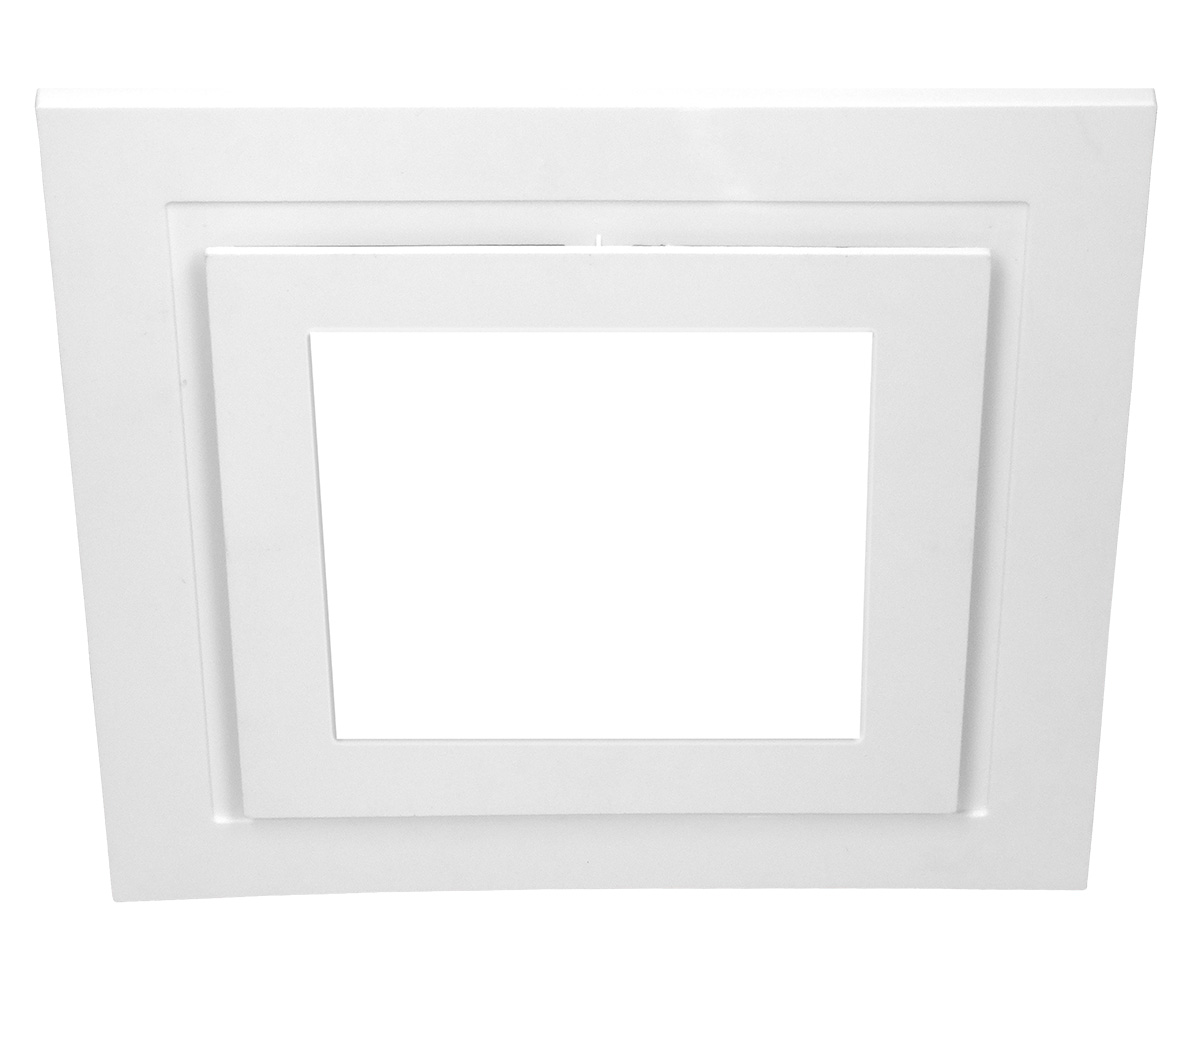 DCT4508_1907_LED_Fascia_-_Square_White_CTE